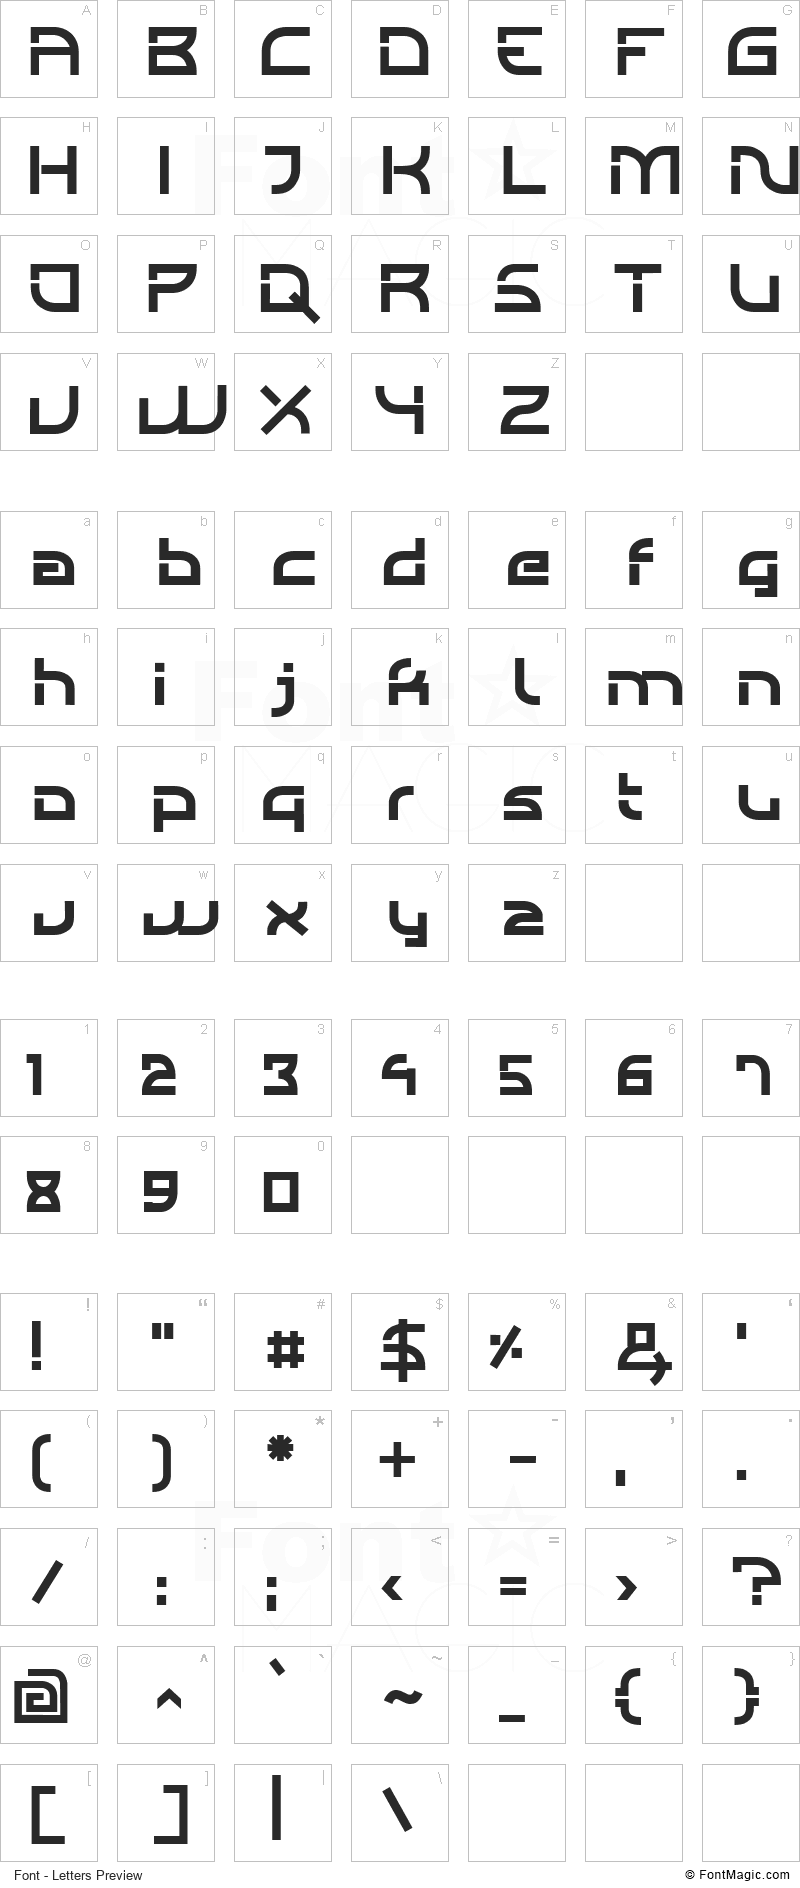 Individigital Font - All Latters Preview Chart